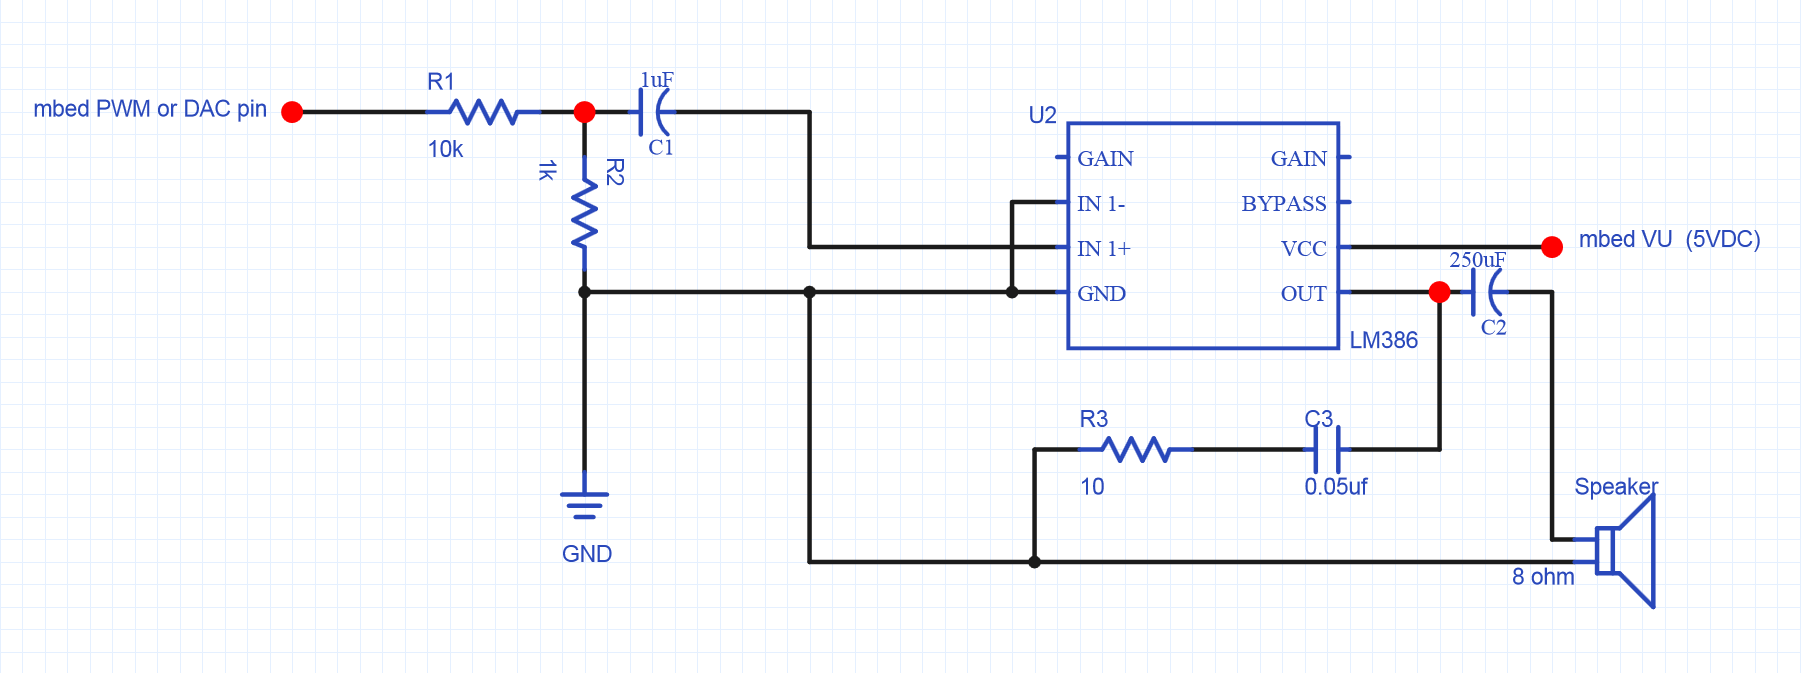 Range Schematic Wiring Another Blog About Diagram Electric Using A Speaker For Audio Output Mbed Oven